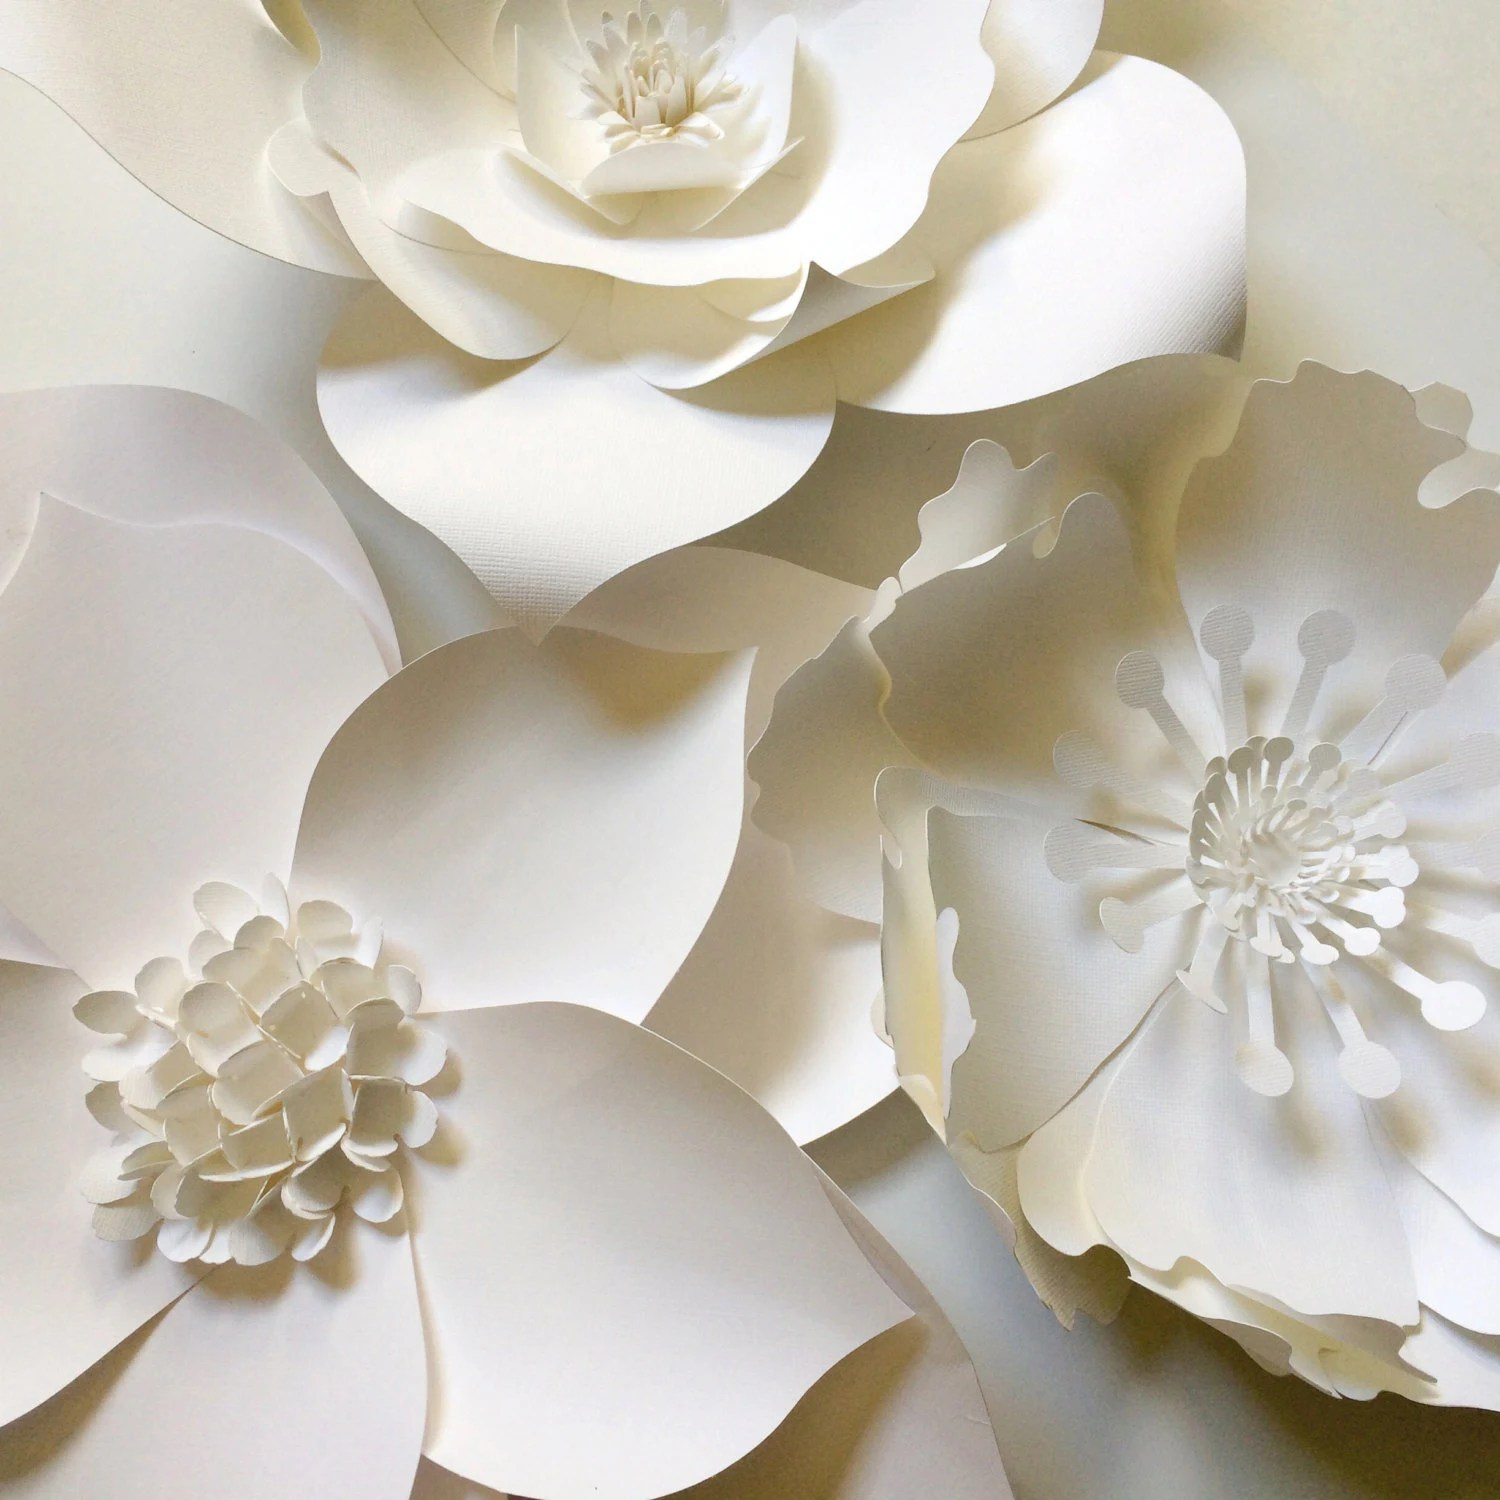 Paper Flower Wall Decor large paper flower backdrop by ... on Hanging Wall Sconces For Flowers id=97925